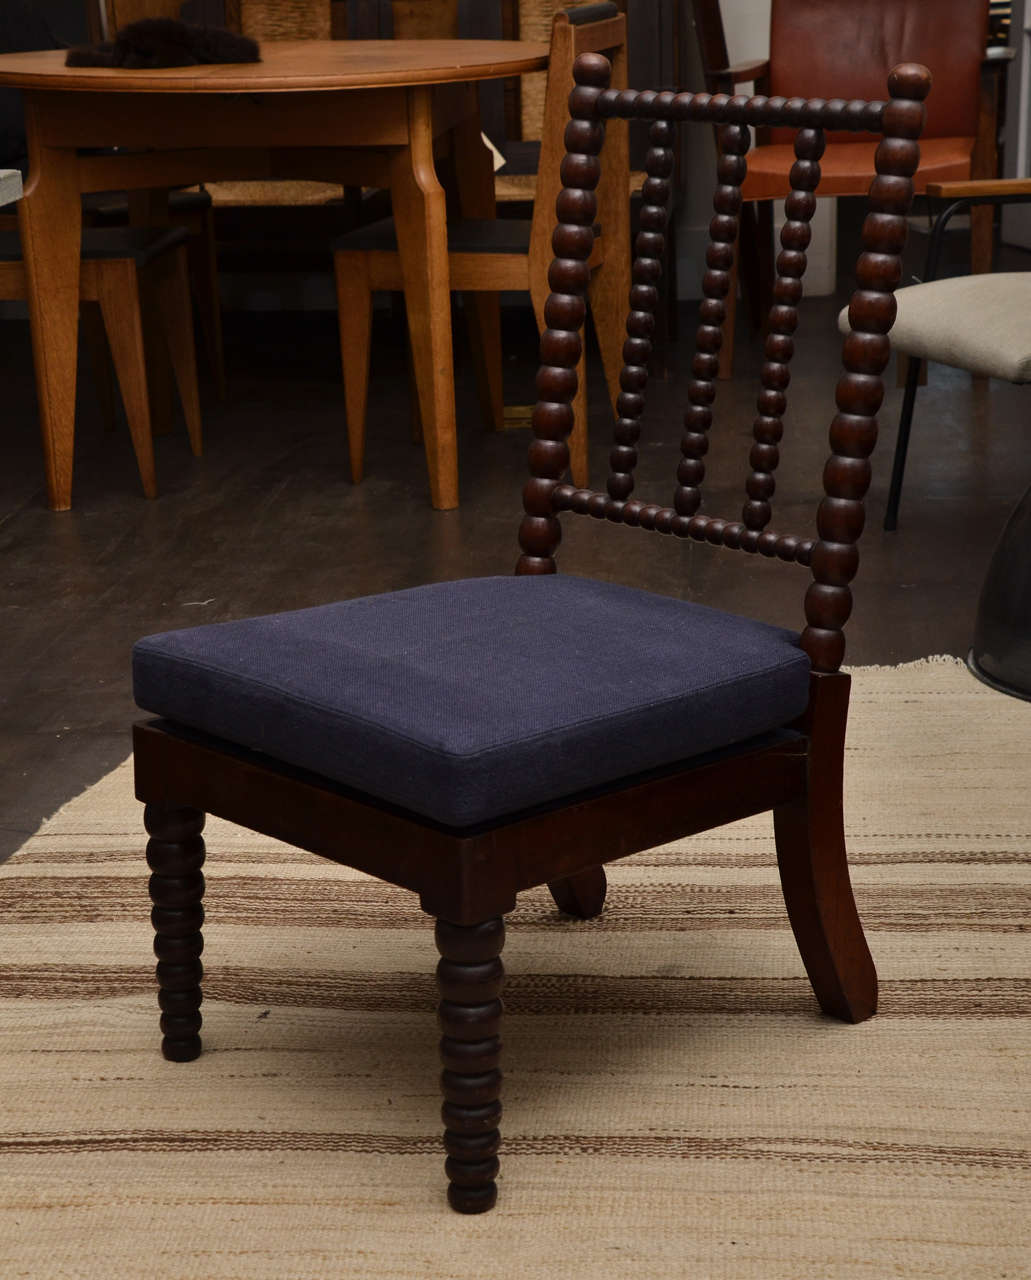 Bobbin style side chair with three-spindle backrest. Newly upholstered navy linen seat cushion.